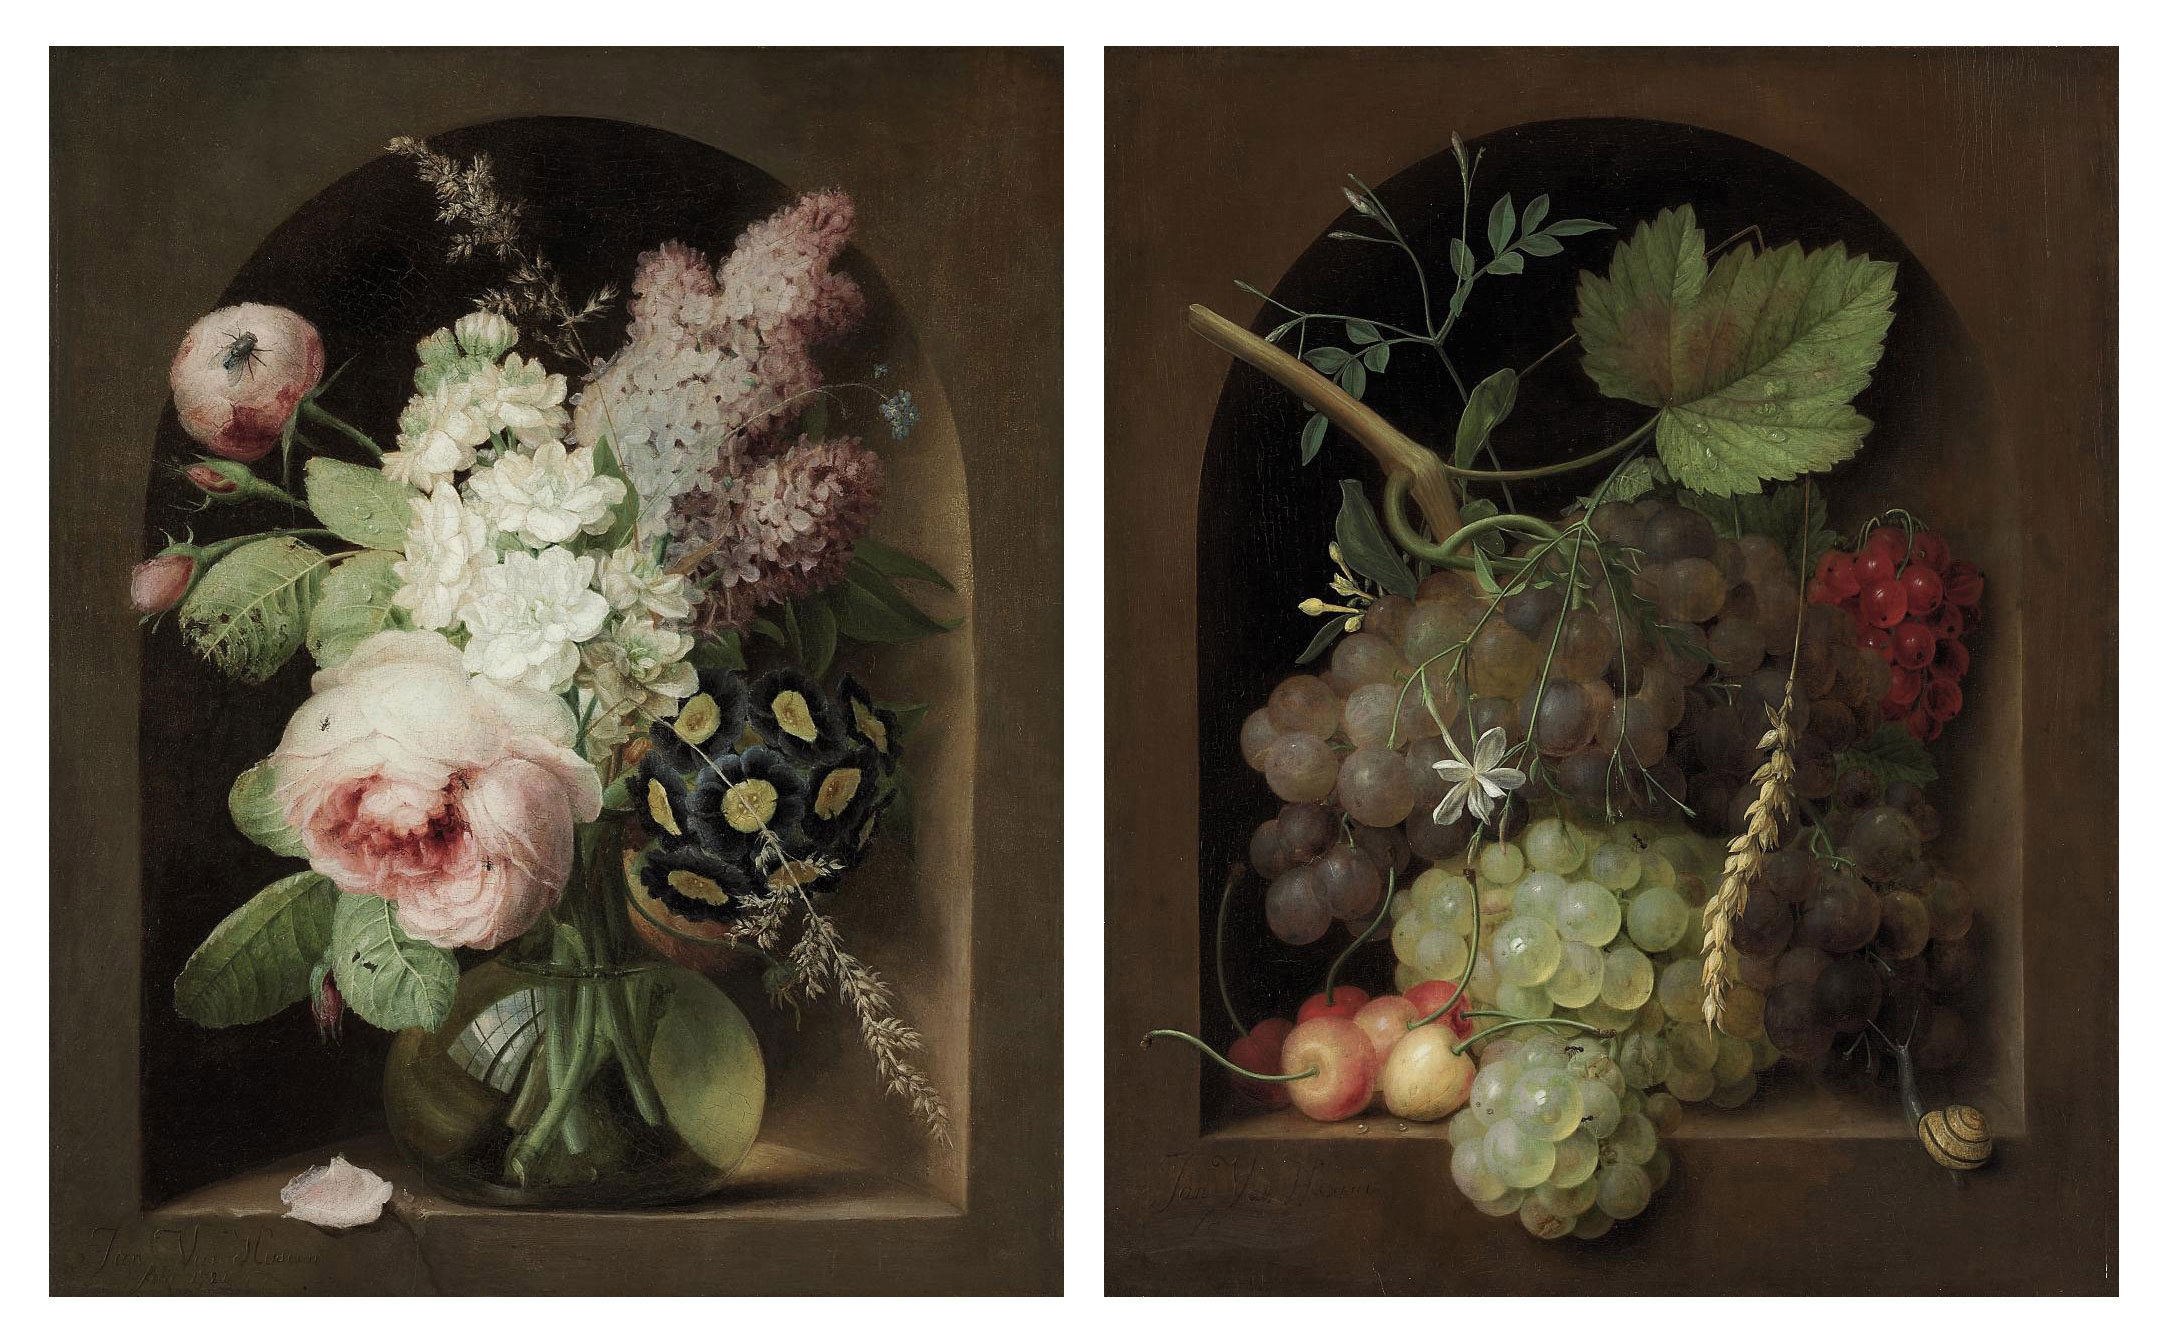 Roses, hyacinth and other flowers in a glass vase in a stone niche; and Grapes, cherries and wheat with a snail in a stone niche